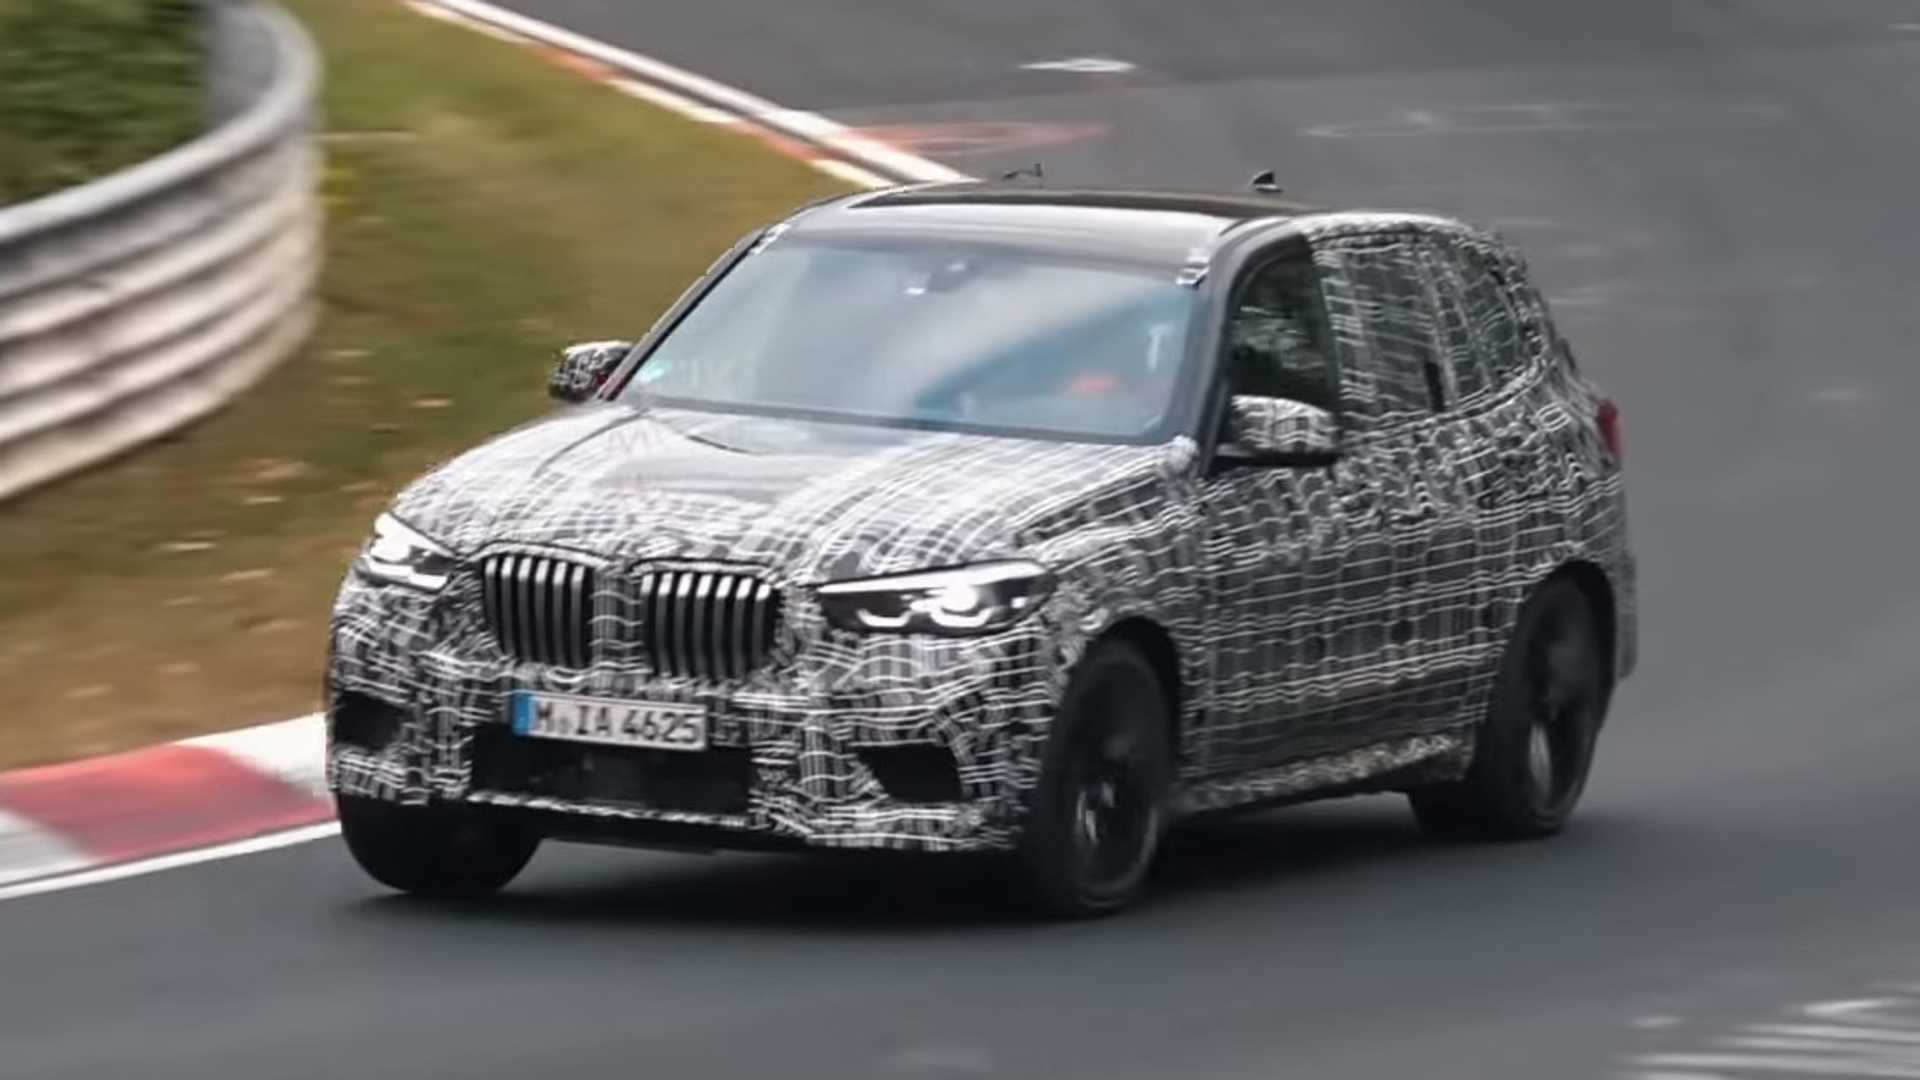 27 All New Bmw X5M 2020 Reviews with Bmw X5M 2020